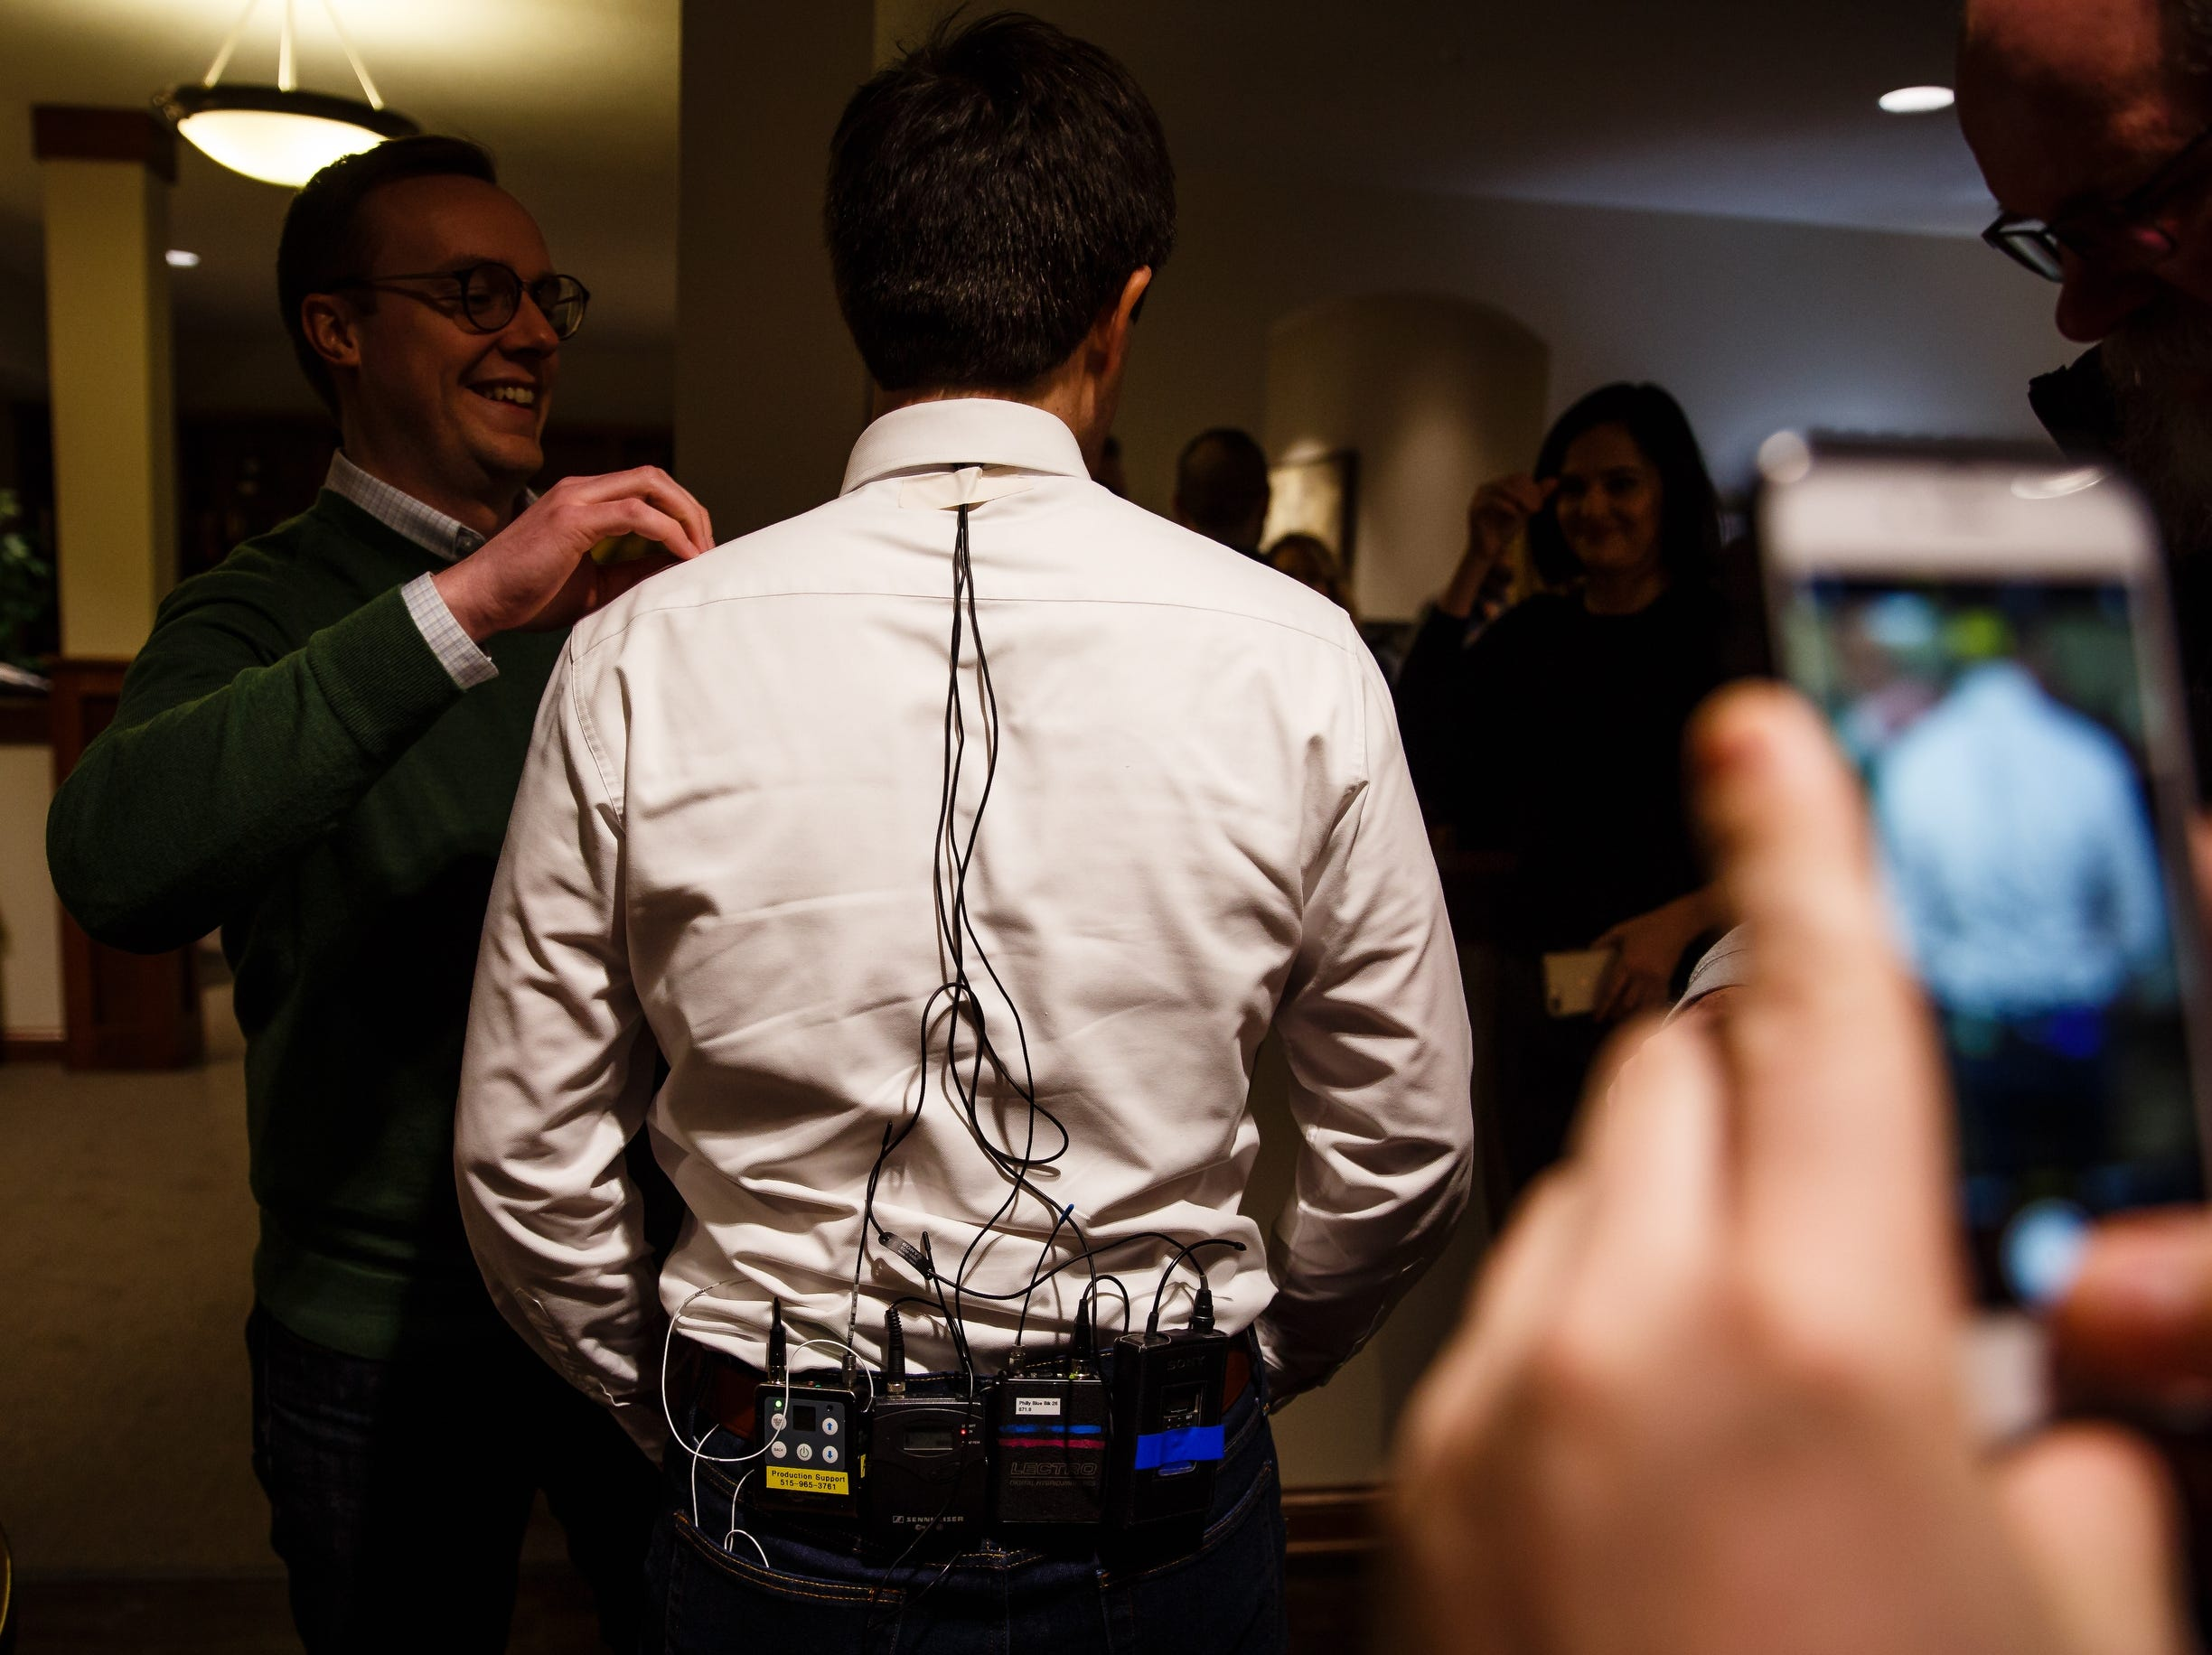 Pete Buttigieg, a 2020 Democratic hopeful, is has microphones put on him before speaking at a campaign event at Vintage Cooperative on Friday, Feb. 8, 2019, in Ankeny.